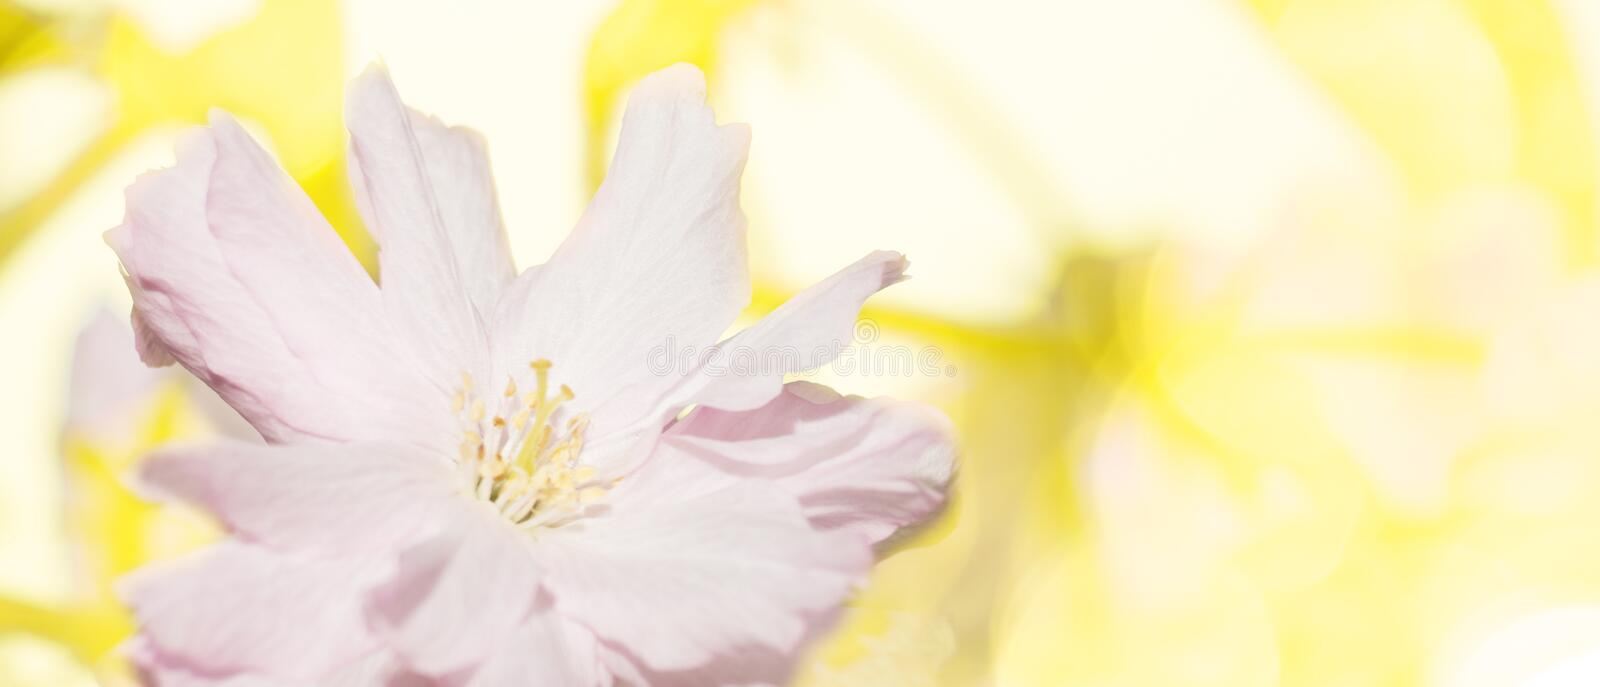 Bright delicate pink flowers on yellow background stock photos